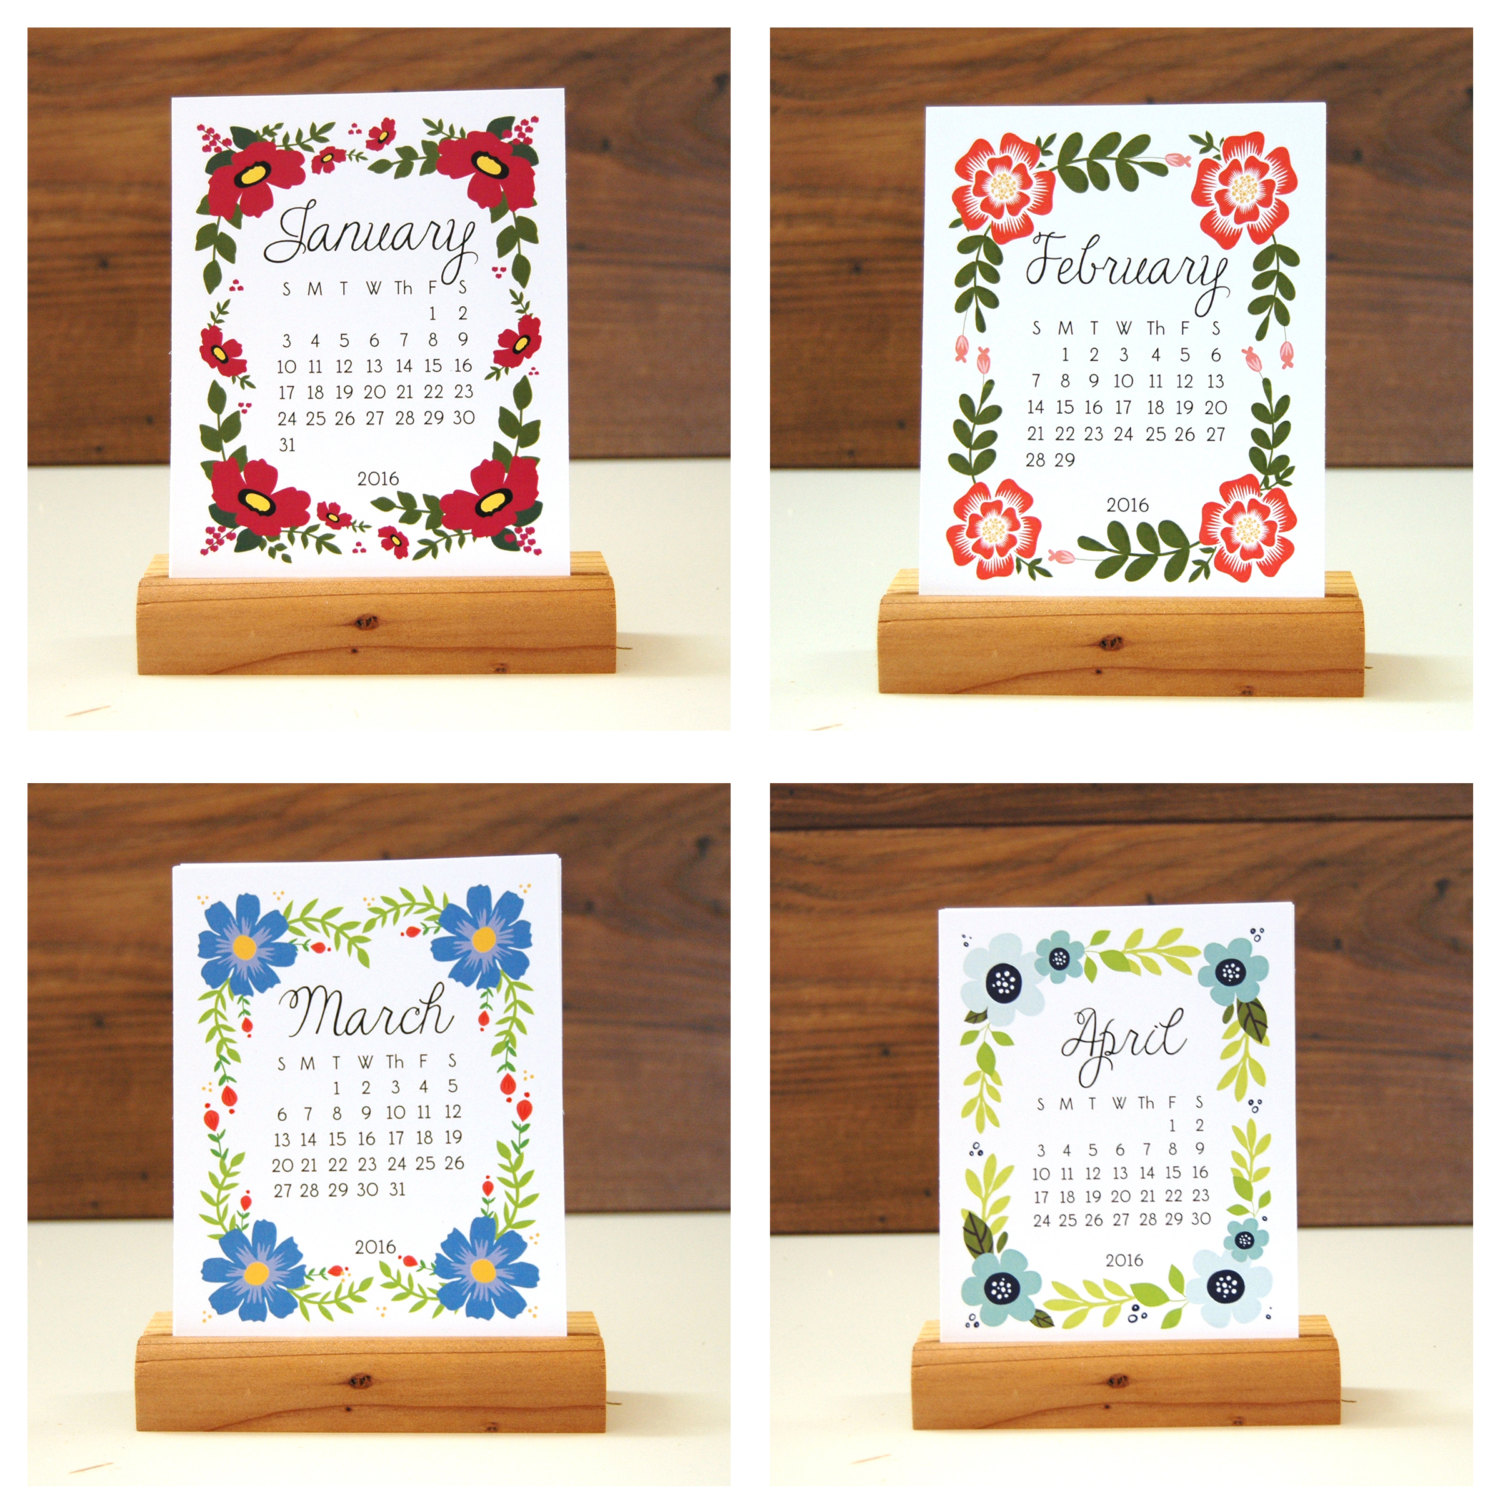 Desk calendar from Etsy shop KTF Design